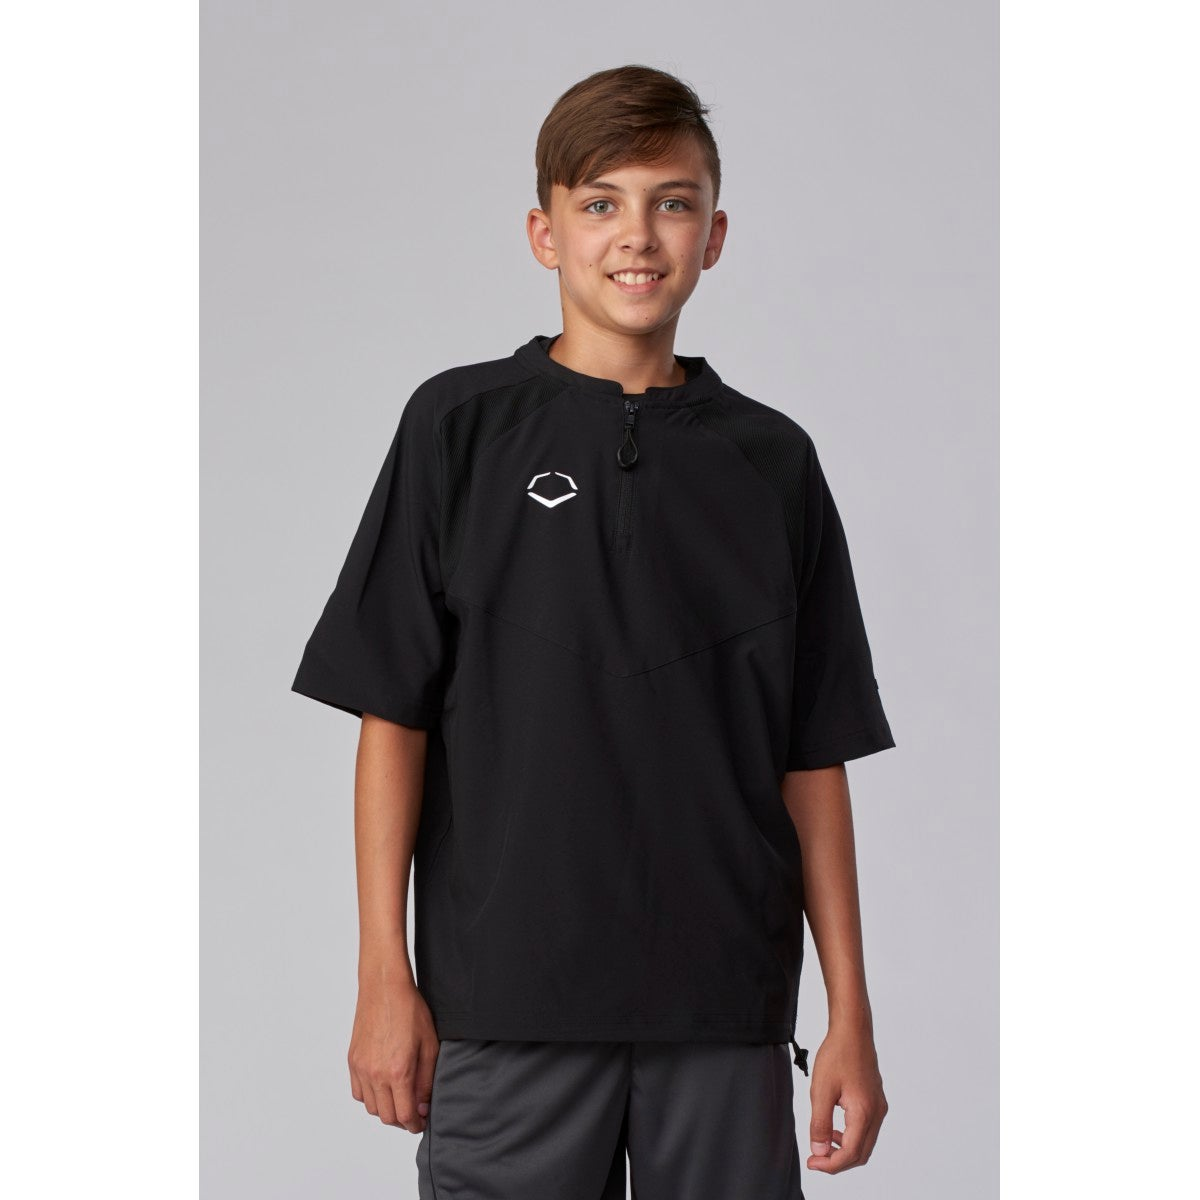 EvoShield Adult and Youth Pro Team BP Jacket